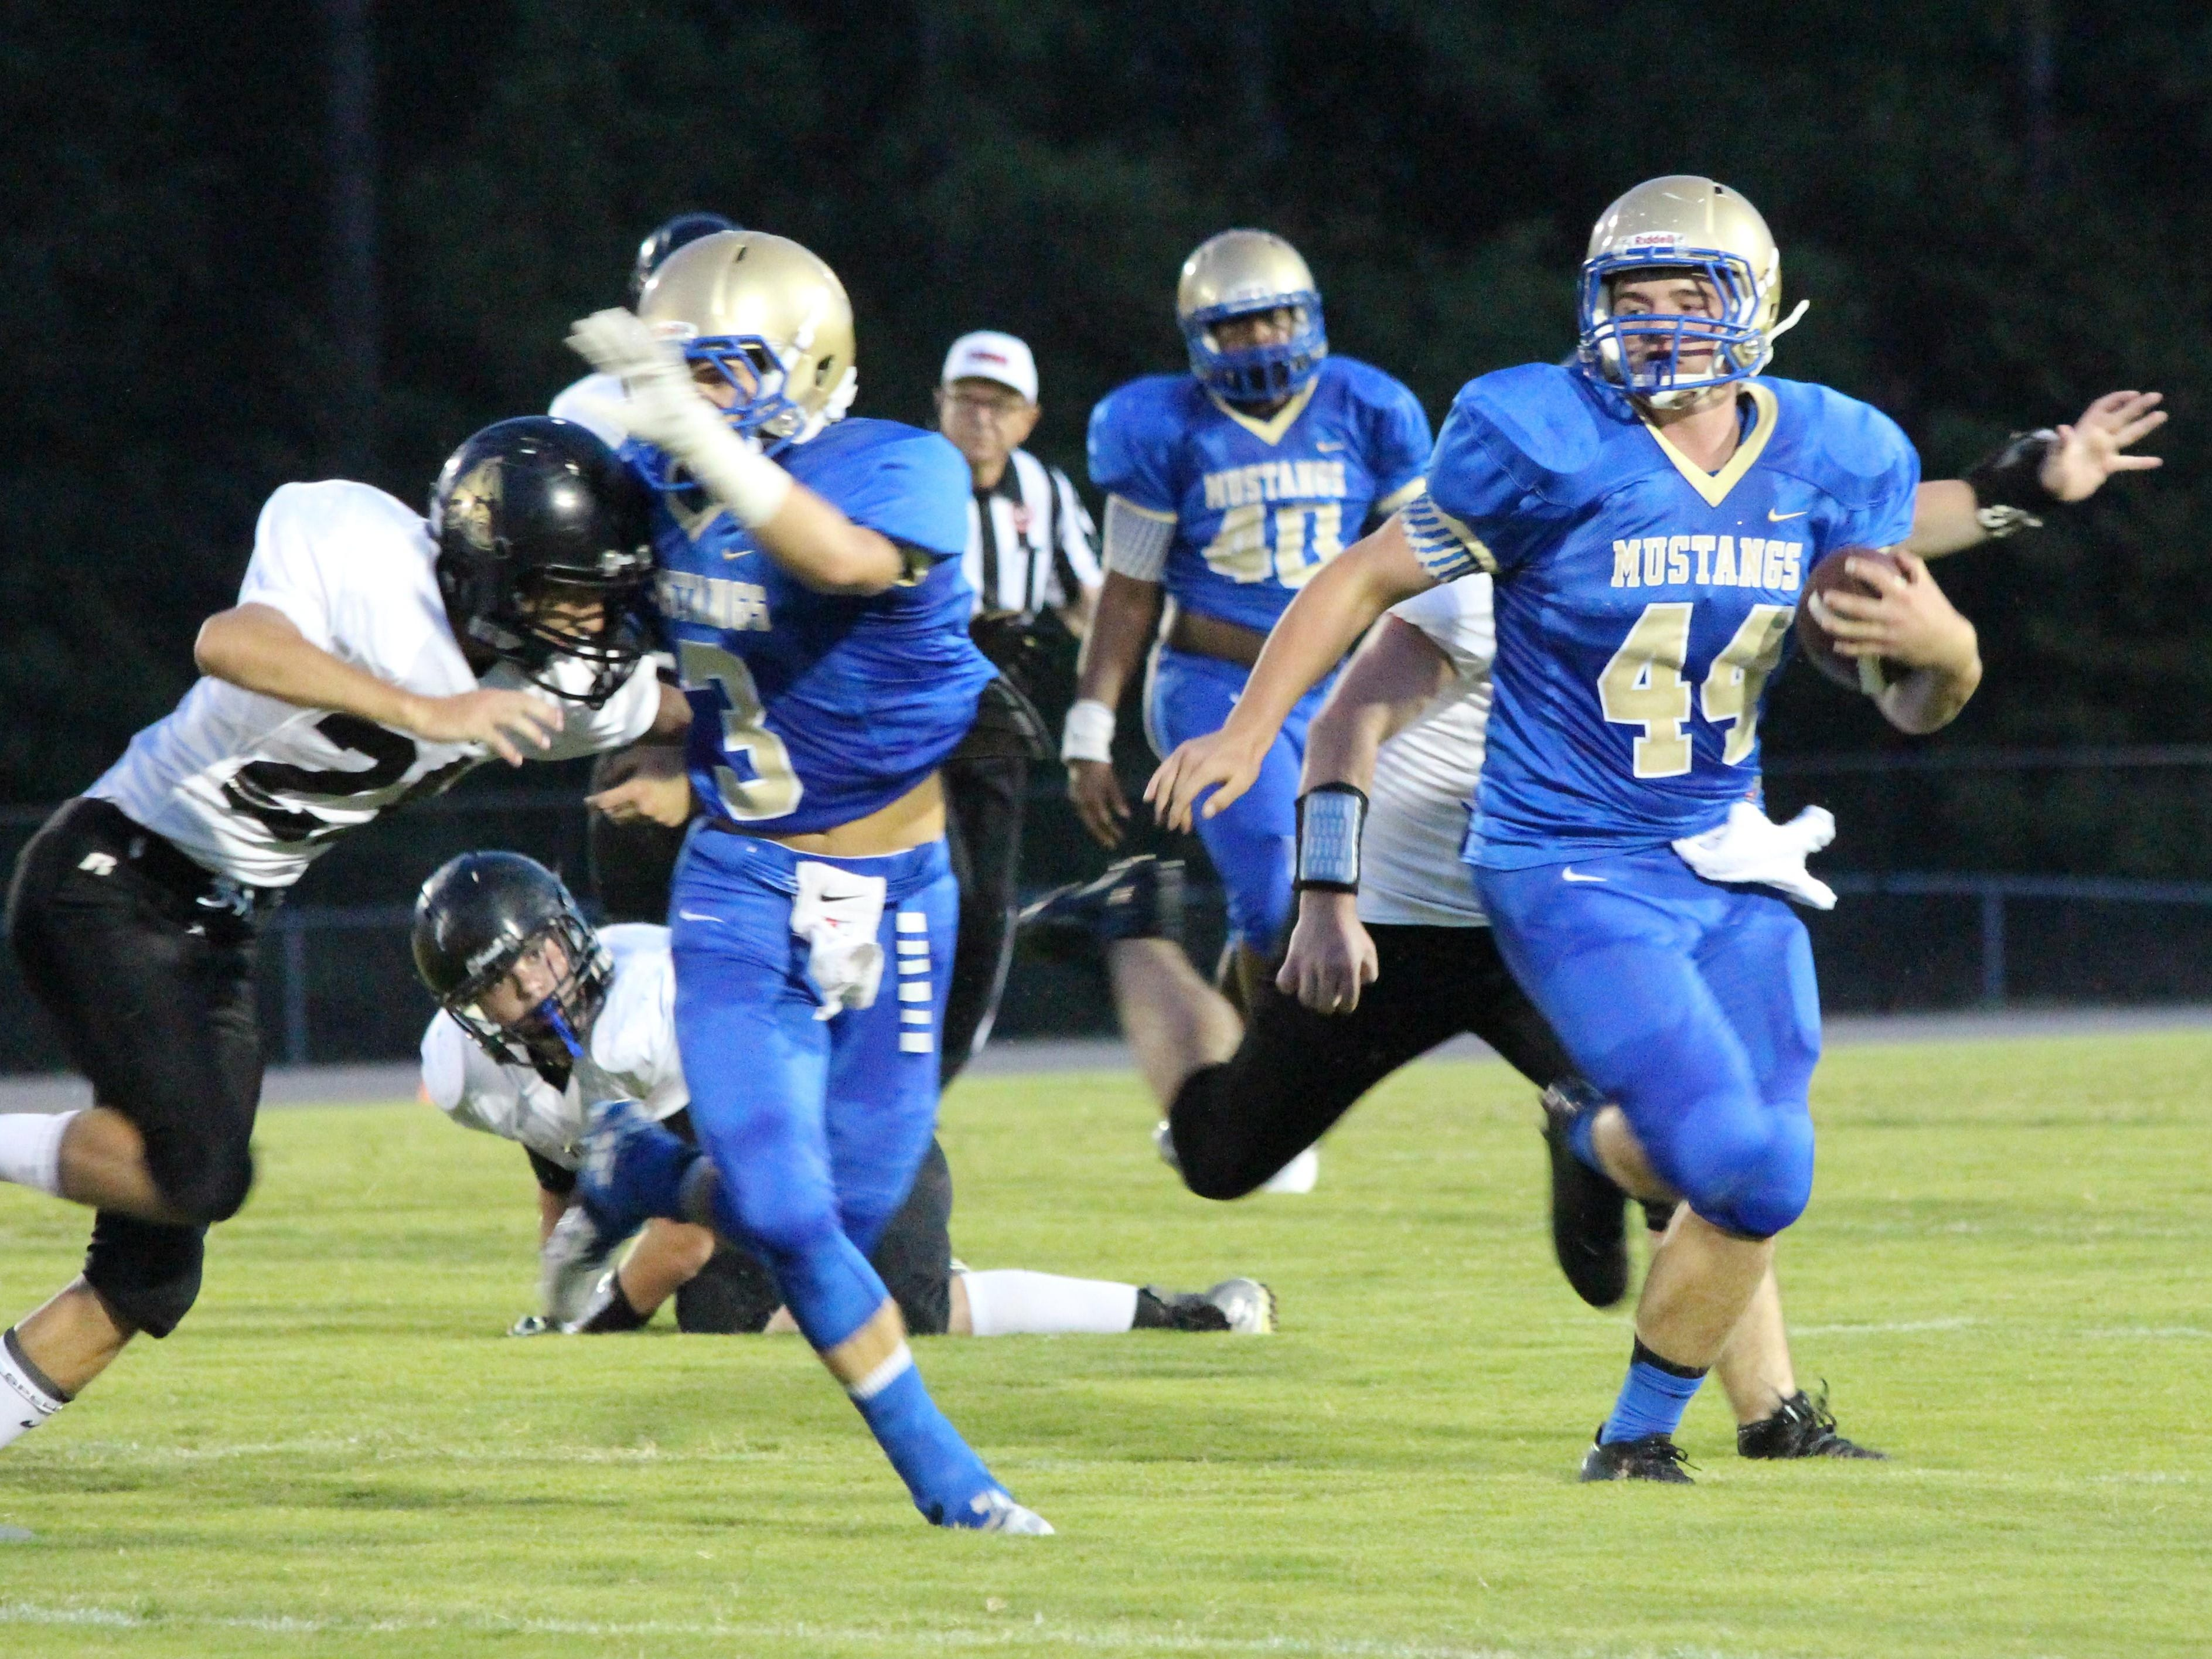 Huntingdon's Kade Pearson shared duties at quarterback with Dylan Johnson most of the season.